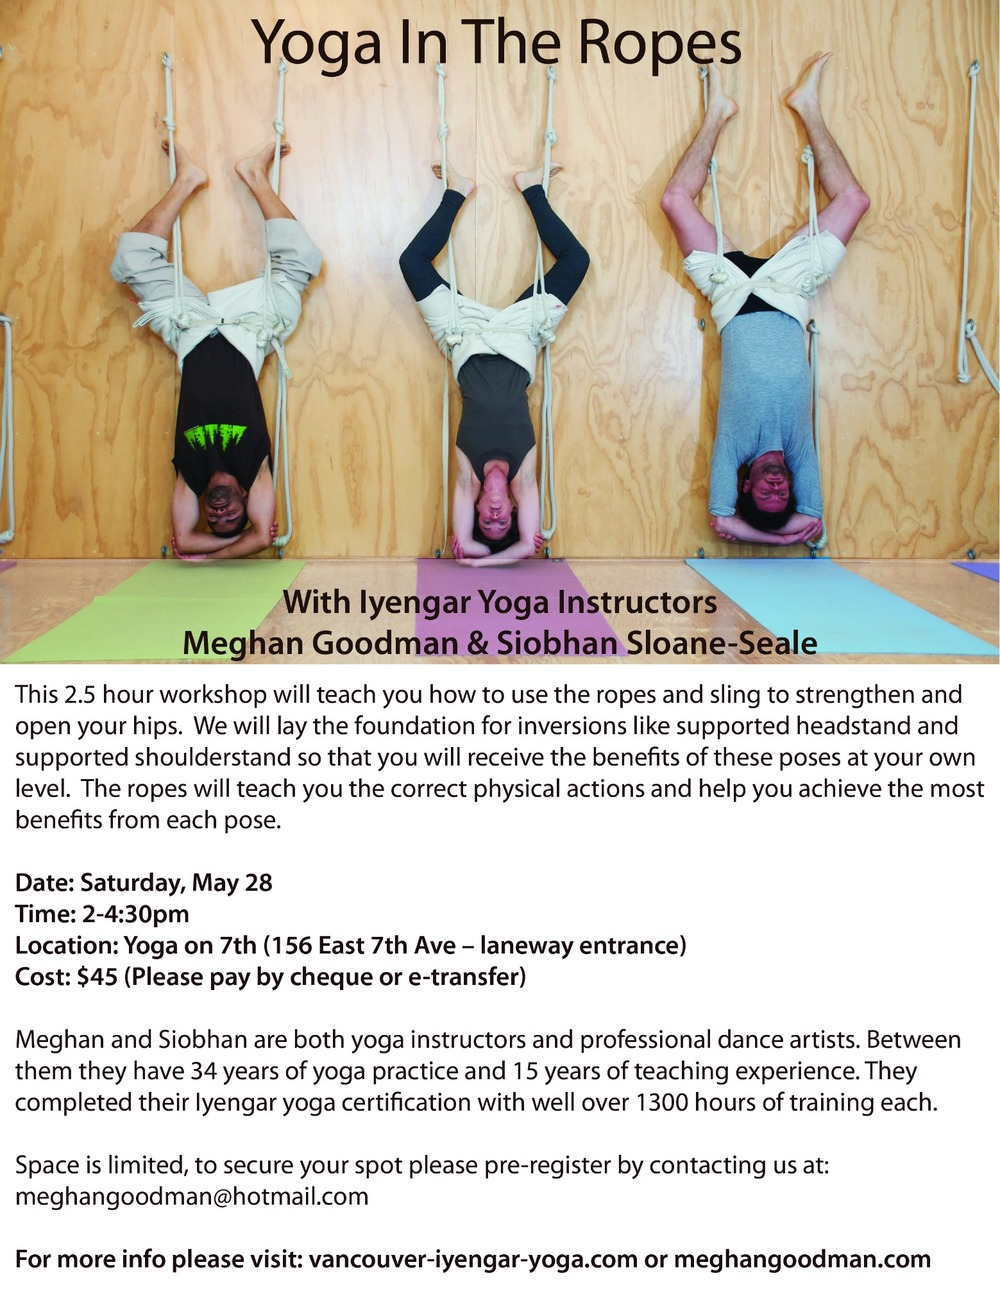 To pre-register, email meghangoodman@hotmail.com